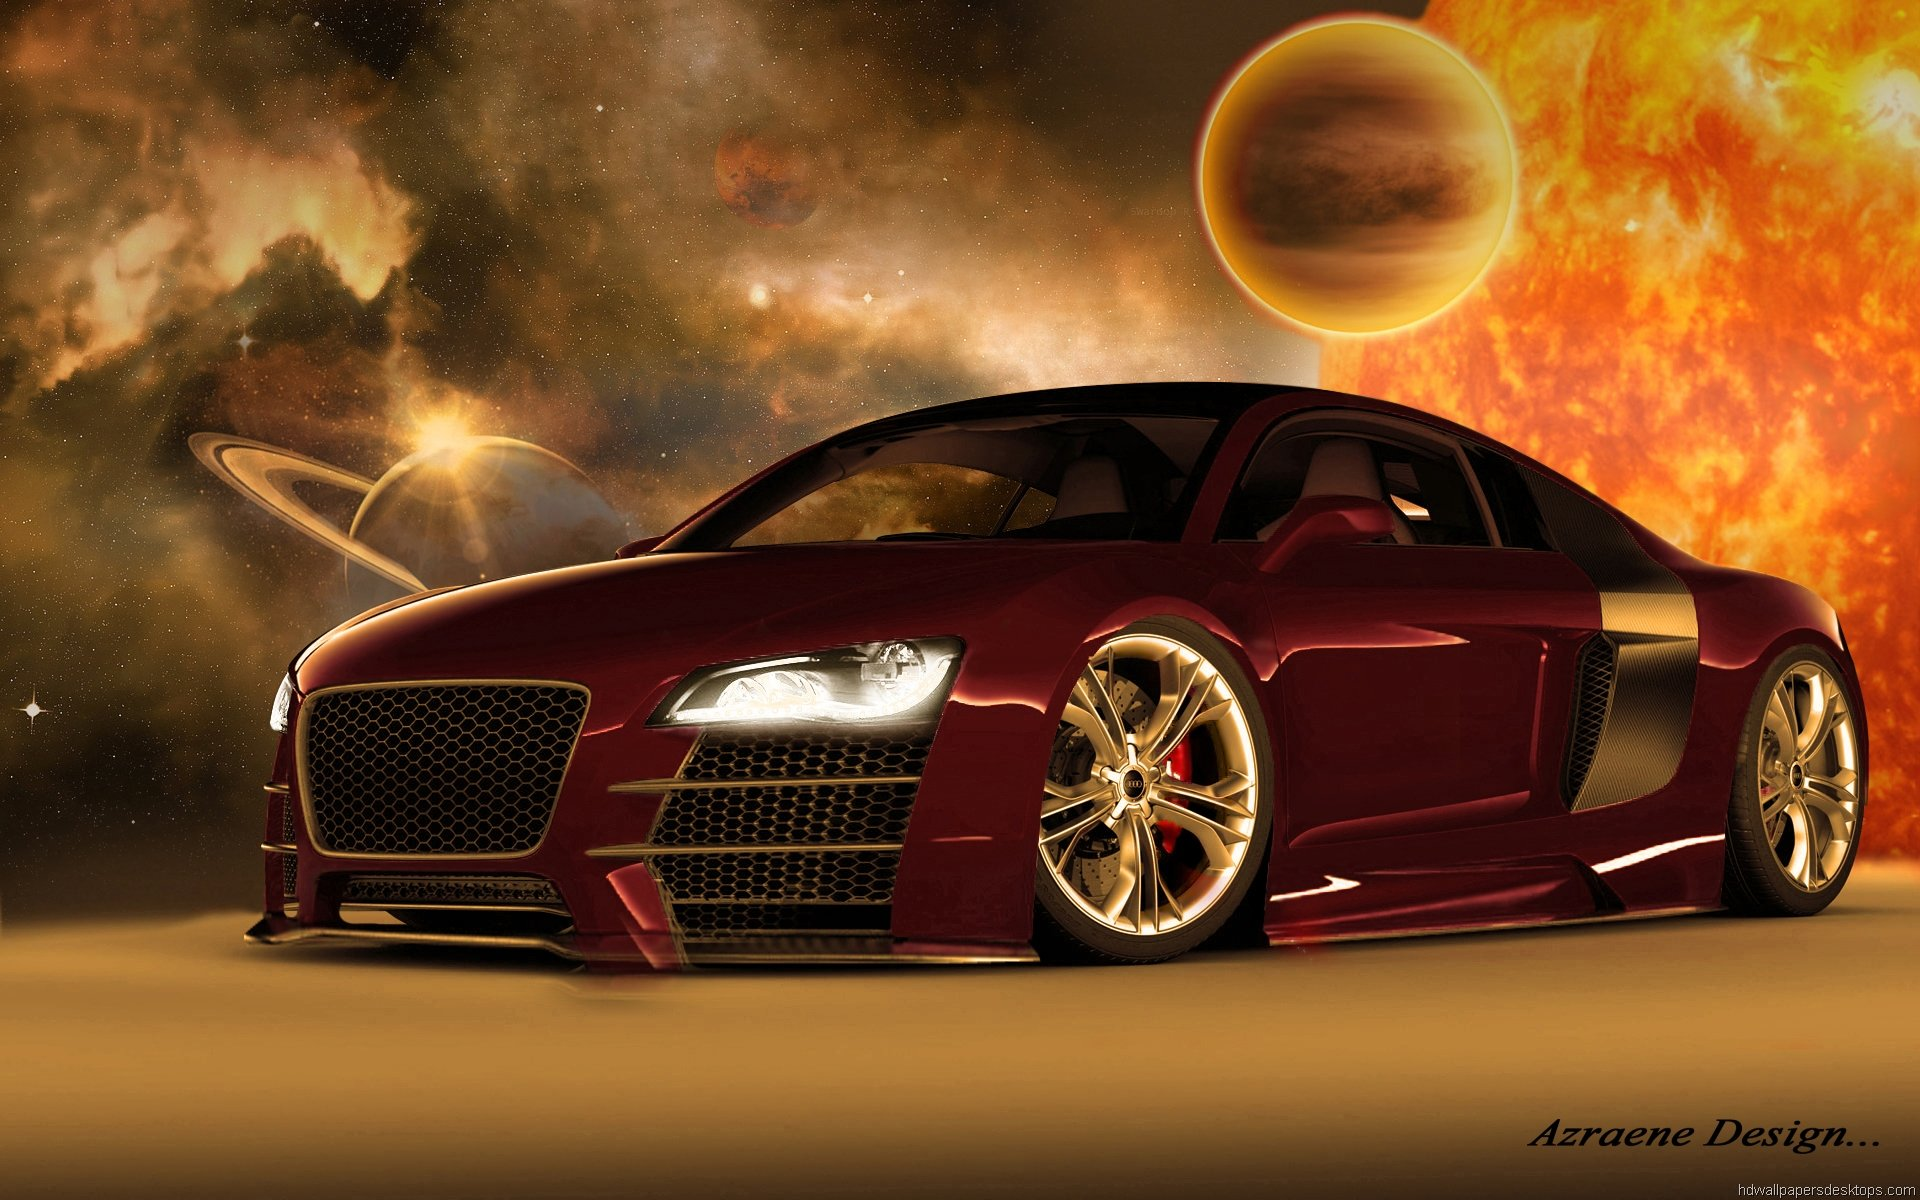 Cool 3D Desktop Cars Wallpapers 1920x1200